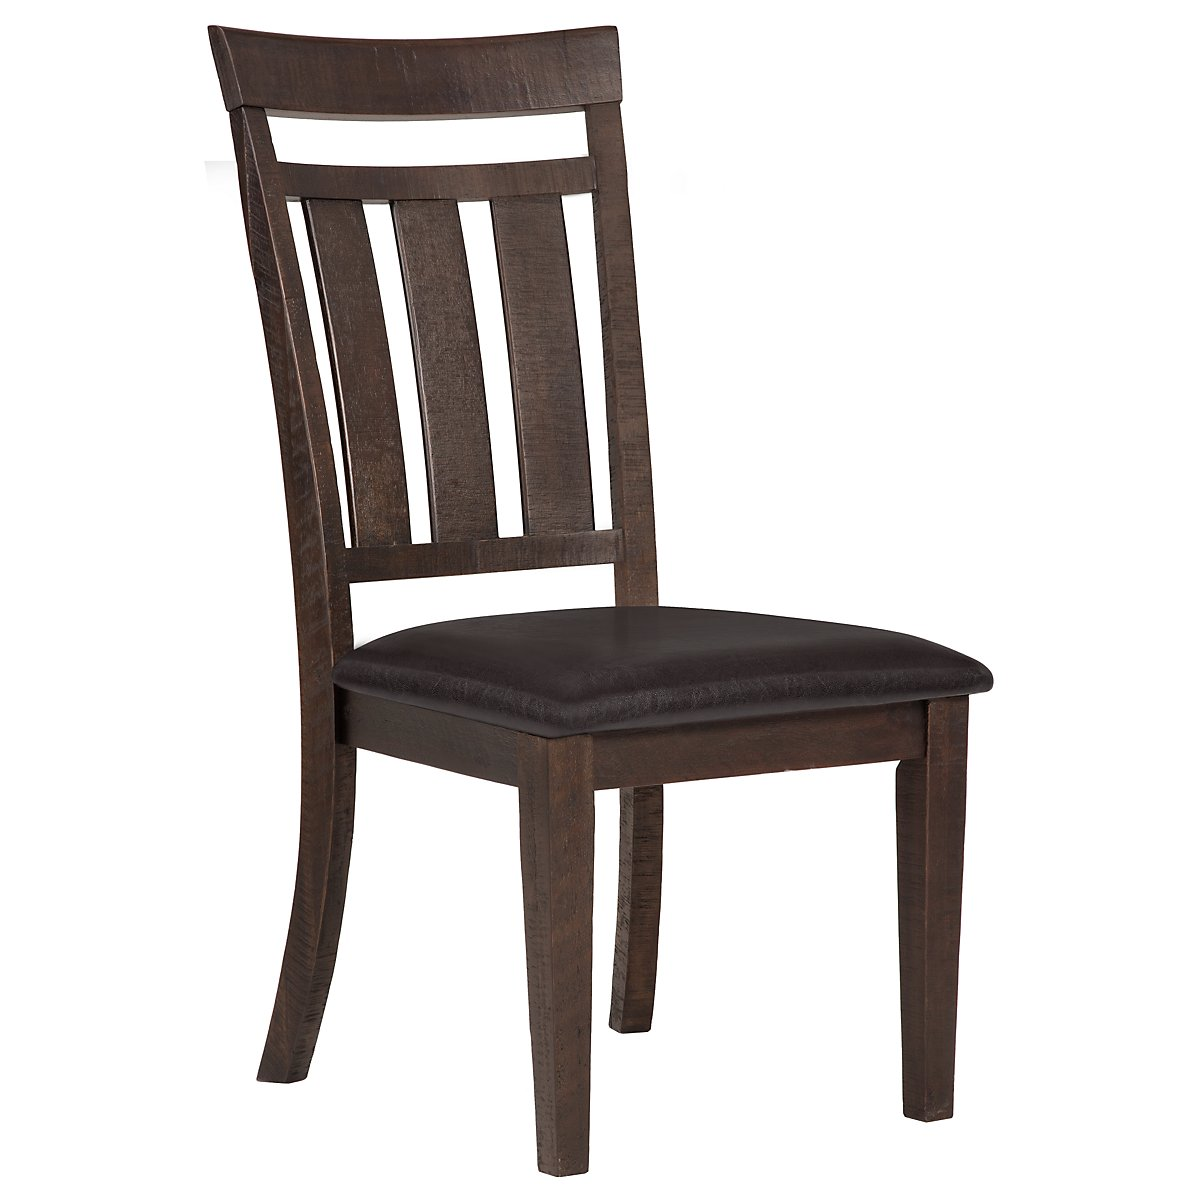 Kona Grove Dark Tone Wood Side Chair